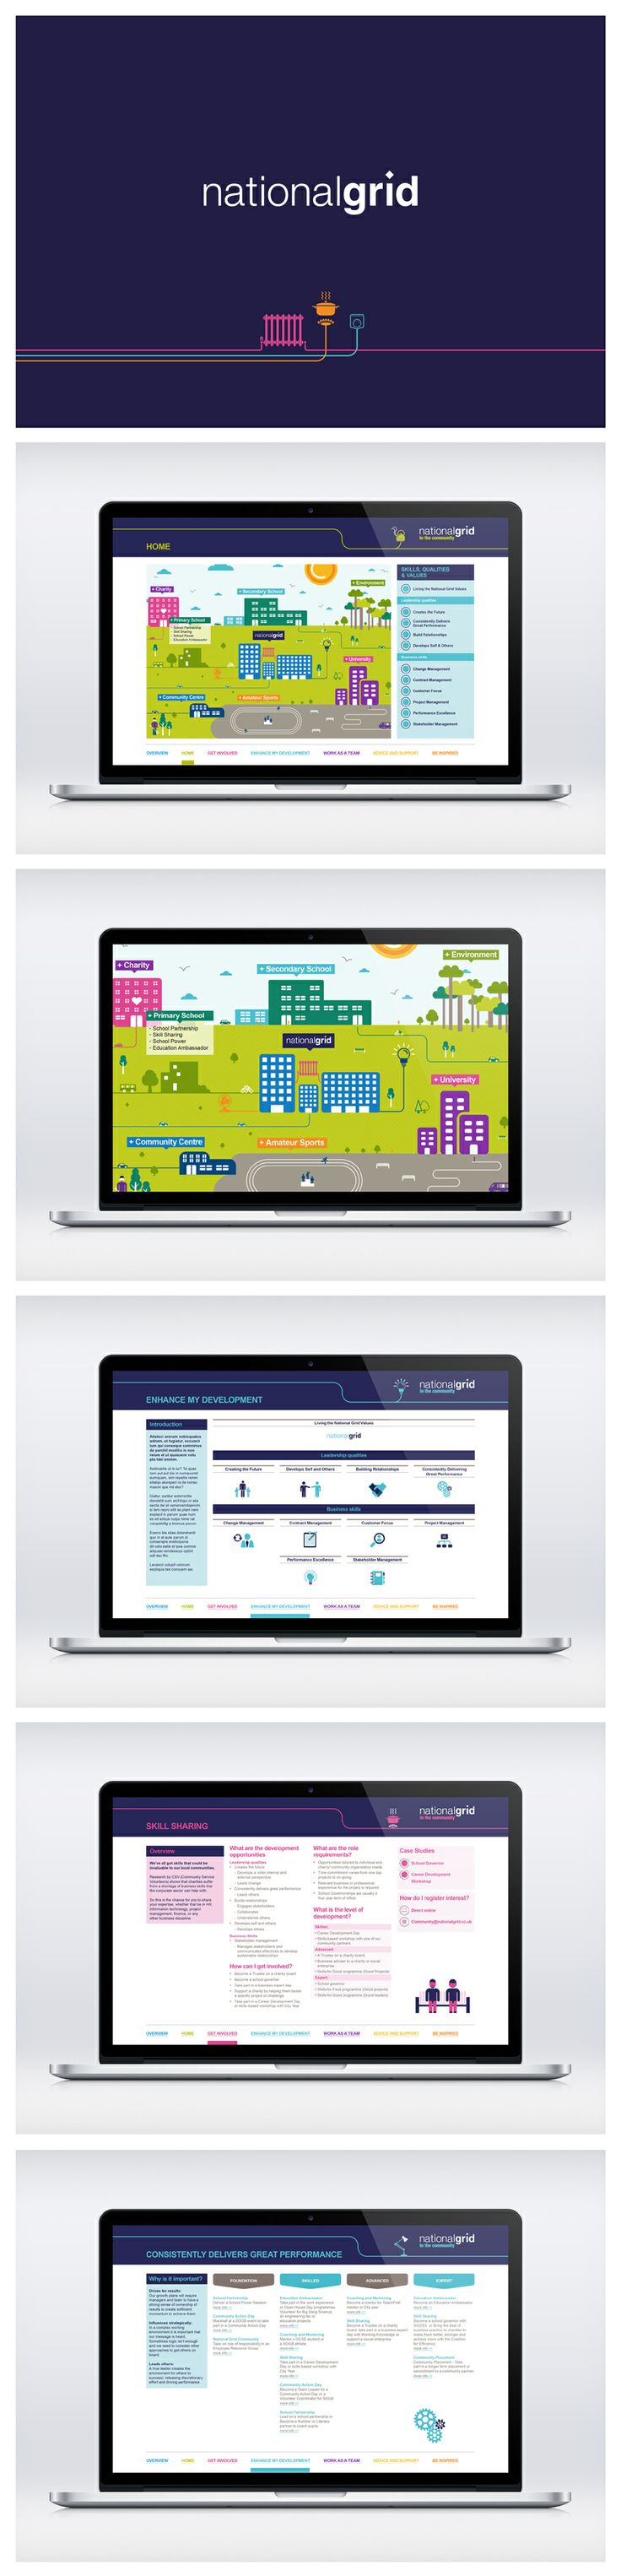 Presentation | Interactive PowerPoint | Icons | Townscape | Cityscape | Flat Design | Volunteering Tool